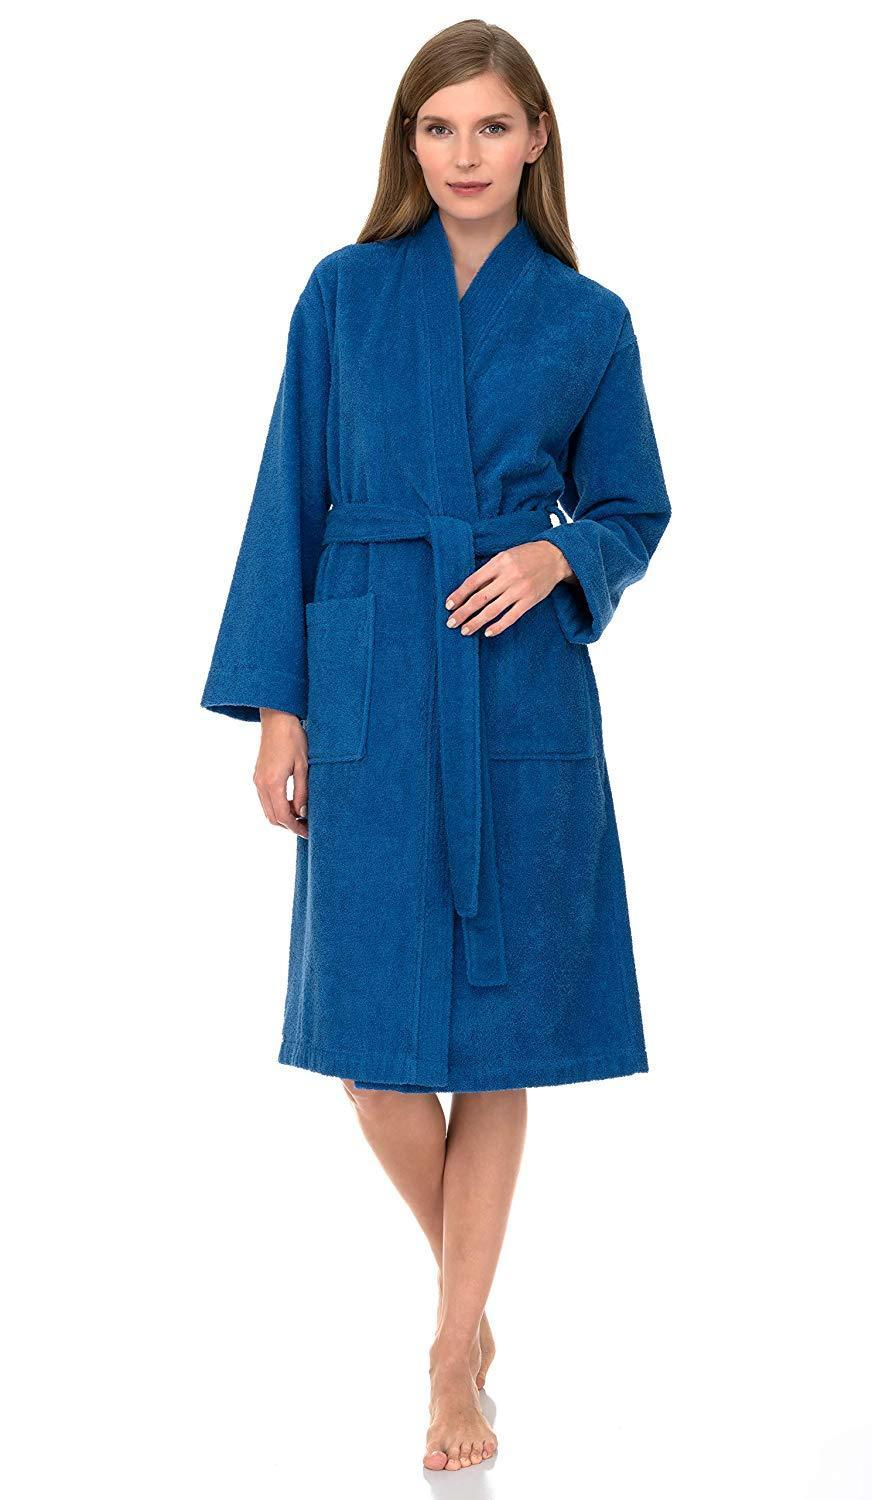 "<h3><a href=""https://amzn.to/38RS6RV"" rel=""nofollow noopener"" target=""_blank"" data-ylk=""slk:Terrycloth Kimono Robe"" class=""link rapid-noclick-resp"">Terrycloth Kimono Robe</a></h3> <br>This cropped, kimono-style robe is crafted from premium 100%-Turkish cotton materials (for an absorbent-cozy finish) and comes fitted with pockets for extra post-shower convenience.<br><br>With nearly 2,000 reviews and a 4.3 out of 5-star rating, customers claim this affordable style is everything from ""very cozy"" to ""pretty"" and ""the best bathrobe ever!""<br><br><strong>TowelSelections</strong> Turkish Cotton Terry Kimono Bathrobe, $, available at <a href=""https://amzn.to/38RS6RV"" rel=""nofollow noopener"" target=""_blank"" data-ylk=""slk:Amazon"" class=""link rapid-noclick-resp"">Amazon</a><br><br><br>"